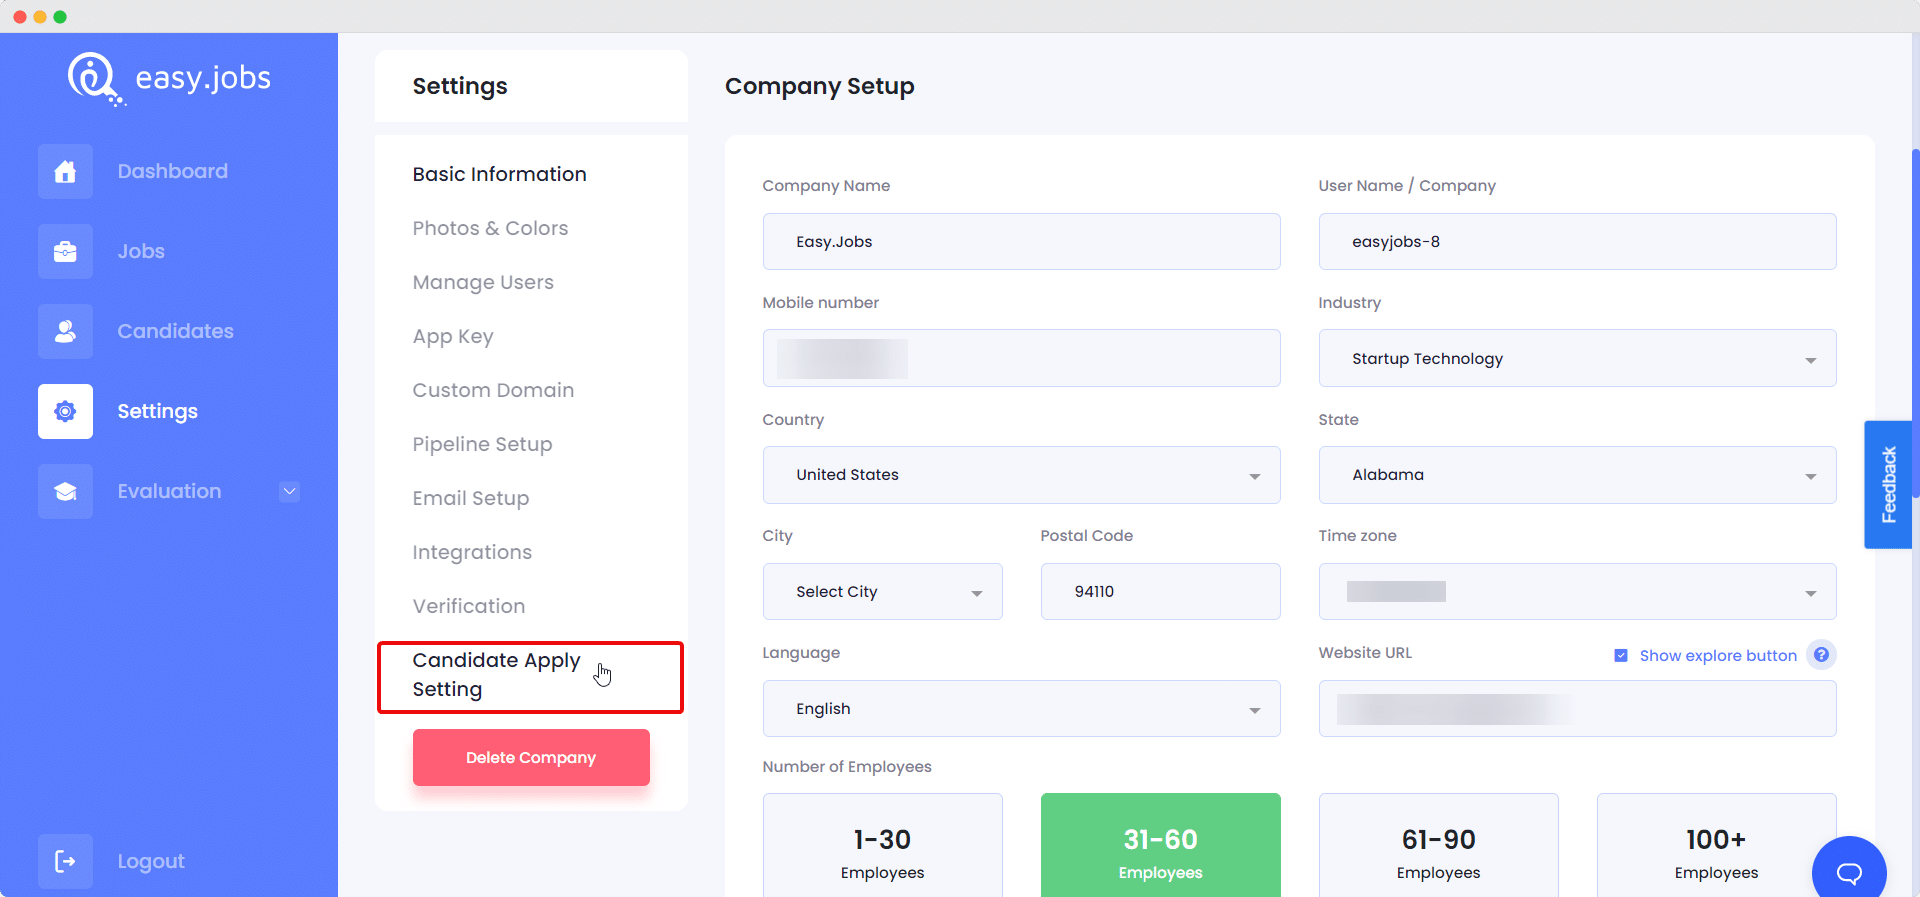 Candidate Apply Settings